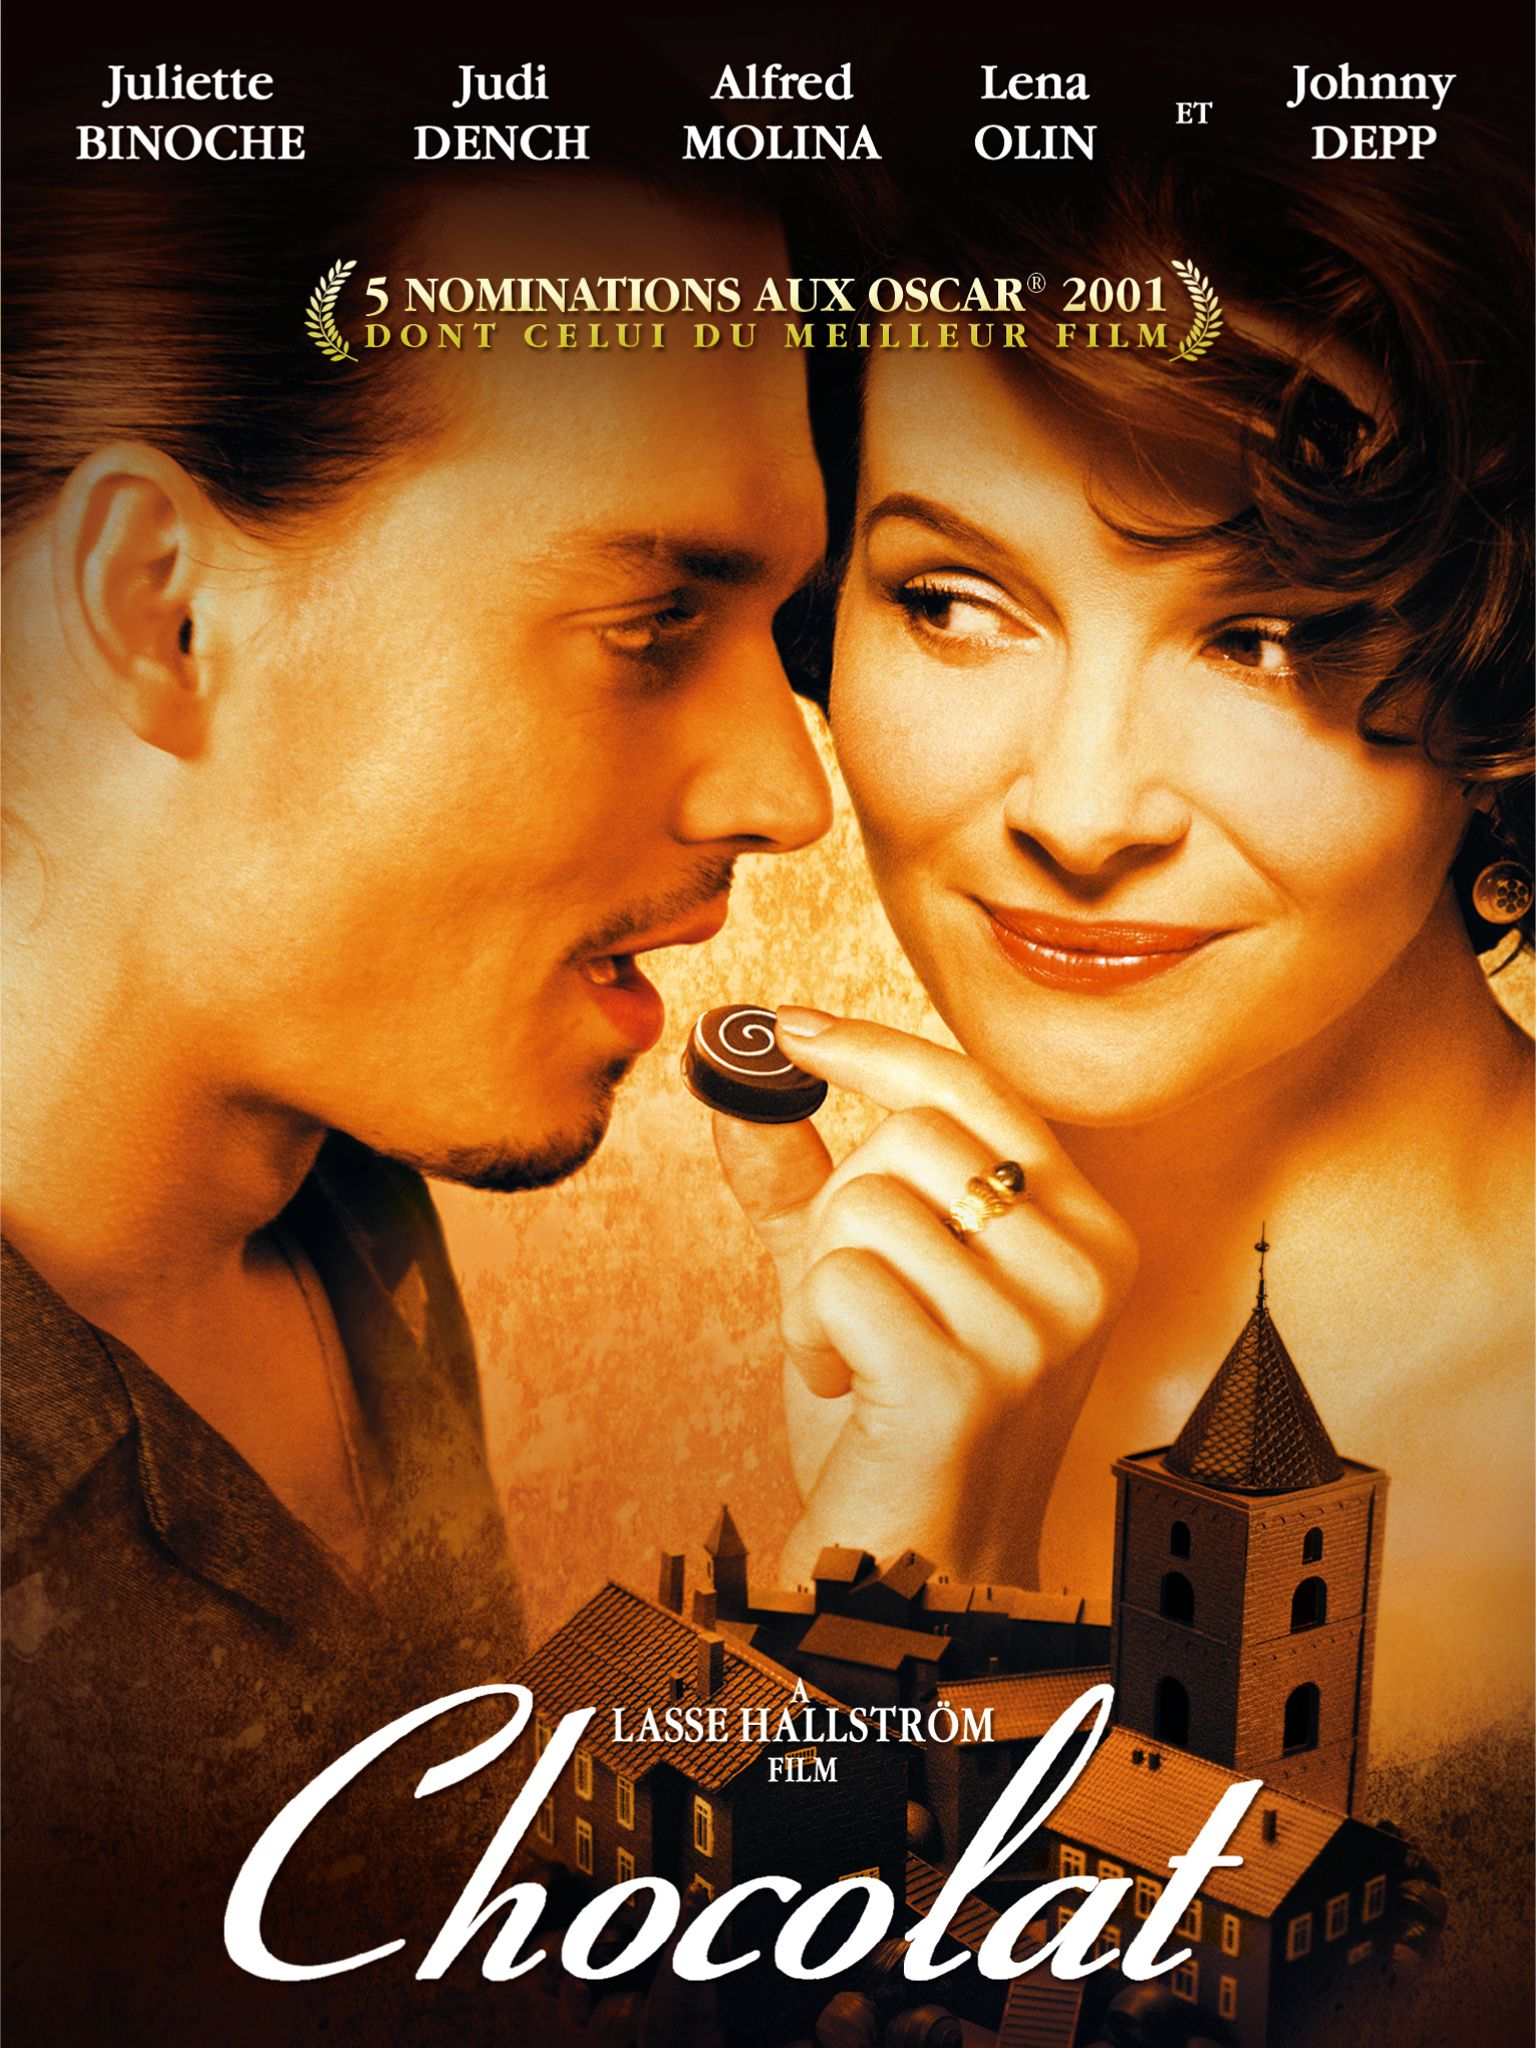 Chocolat (2000) - Directed by: Lasse HallstromStarring: Juliette Binoche, Alfred Molina, Judi Dench, Carrie-Anne Moss, Lena Olin, Peter Stormare, Hugh O'ConorRated: PG-13 for a Scene of Sensuality and Some ViolenceRunning Time: 2 h 1 mTMM Score: 4 stars out of 5STRENGTHS: Tone, Writing, Acting, Themes, Production DesignWEAKNESSES: Cinematography, Editing